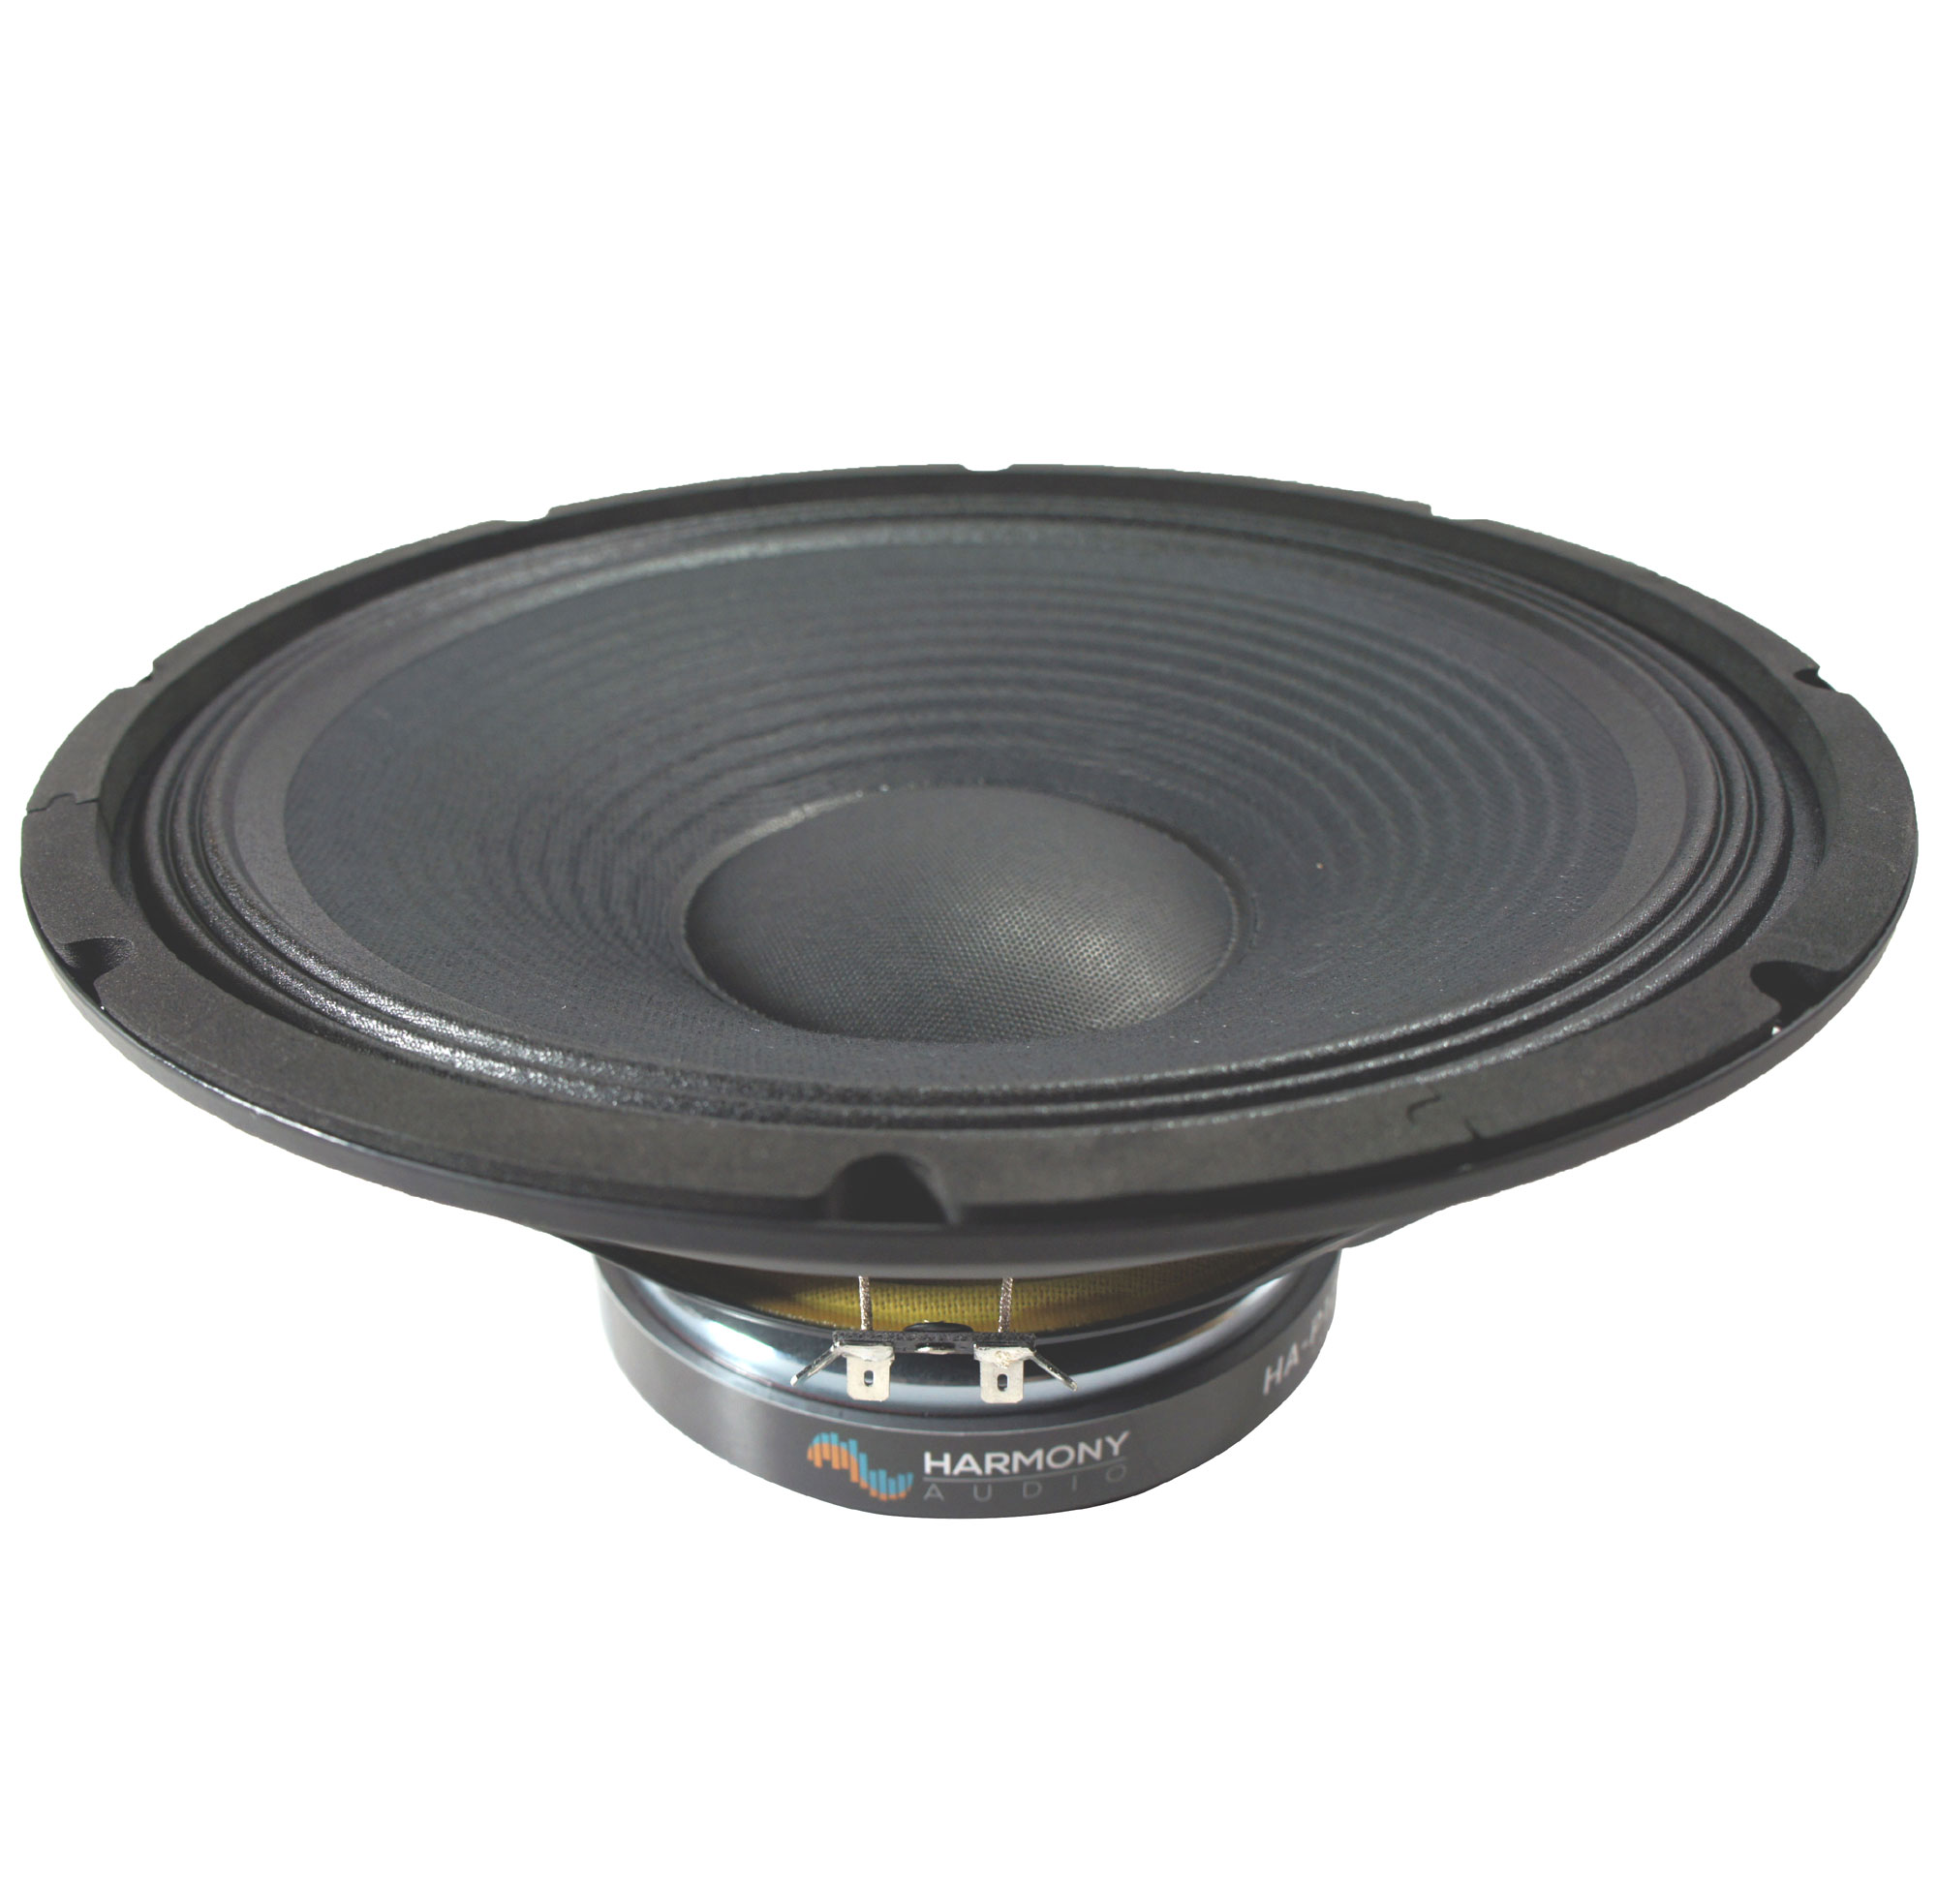 "Harmony HA-P12WS8 Replacement 12"" PA Speaker 8 Ohm Woofer for JBL JRX212"